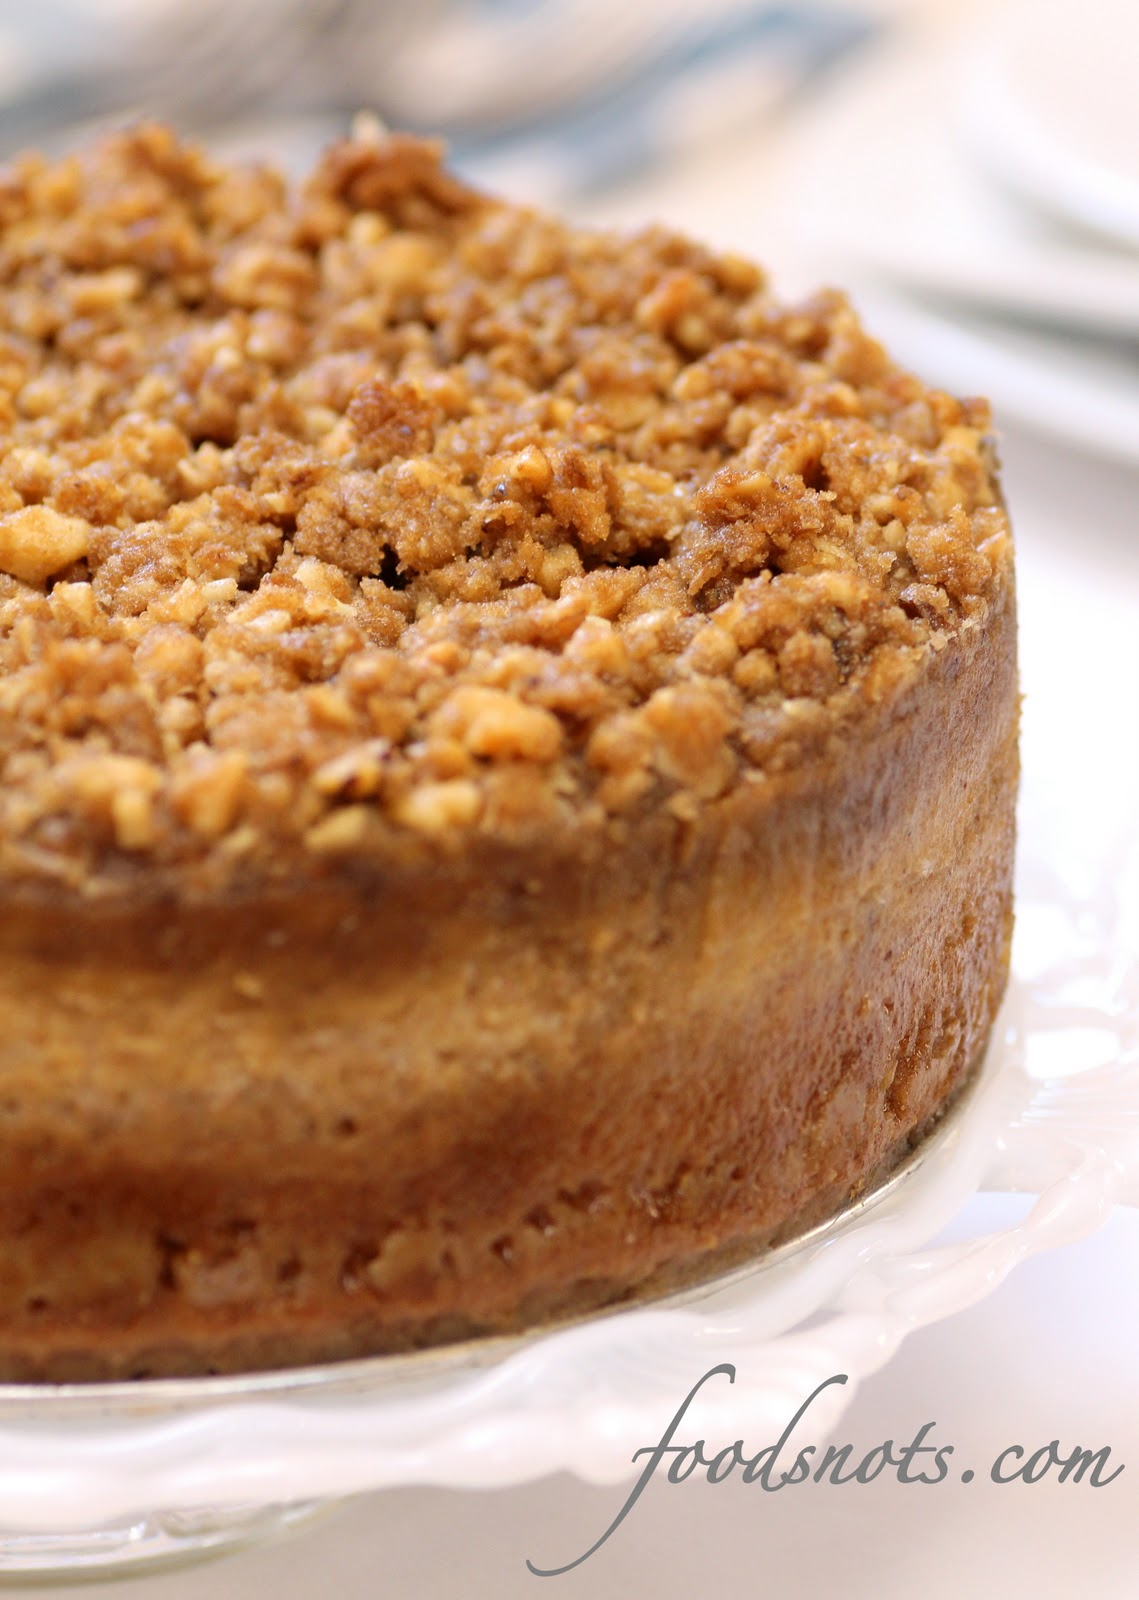 Pumpkin Pie With Brown Sugar-Walnut Topping Recipes — Dishmaps